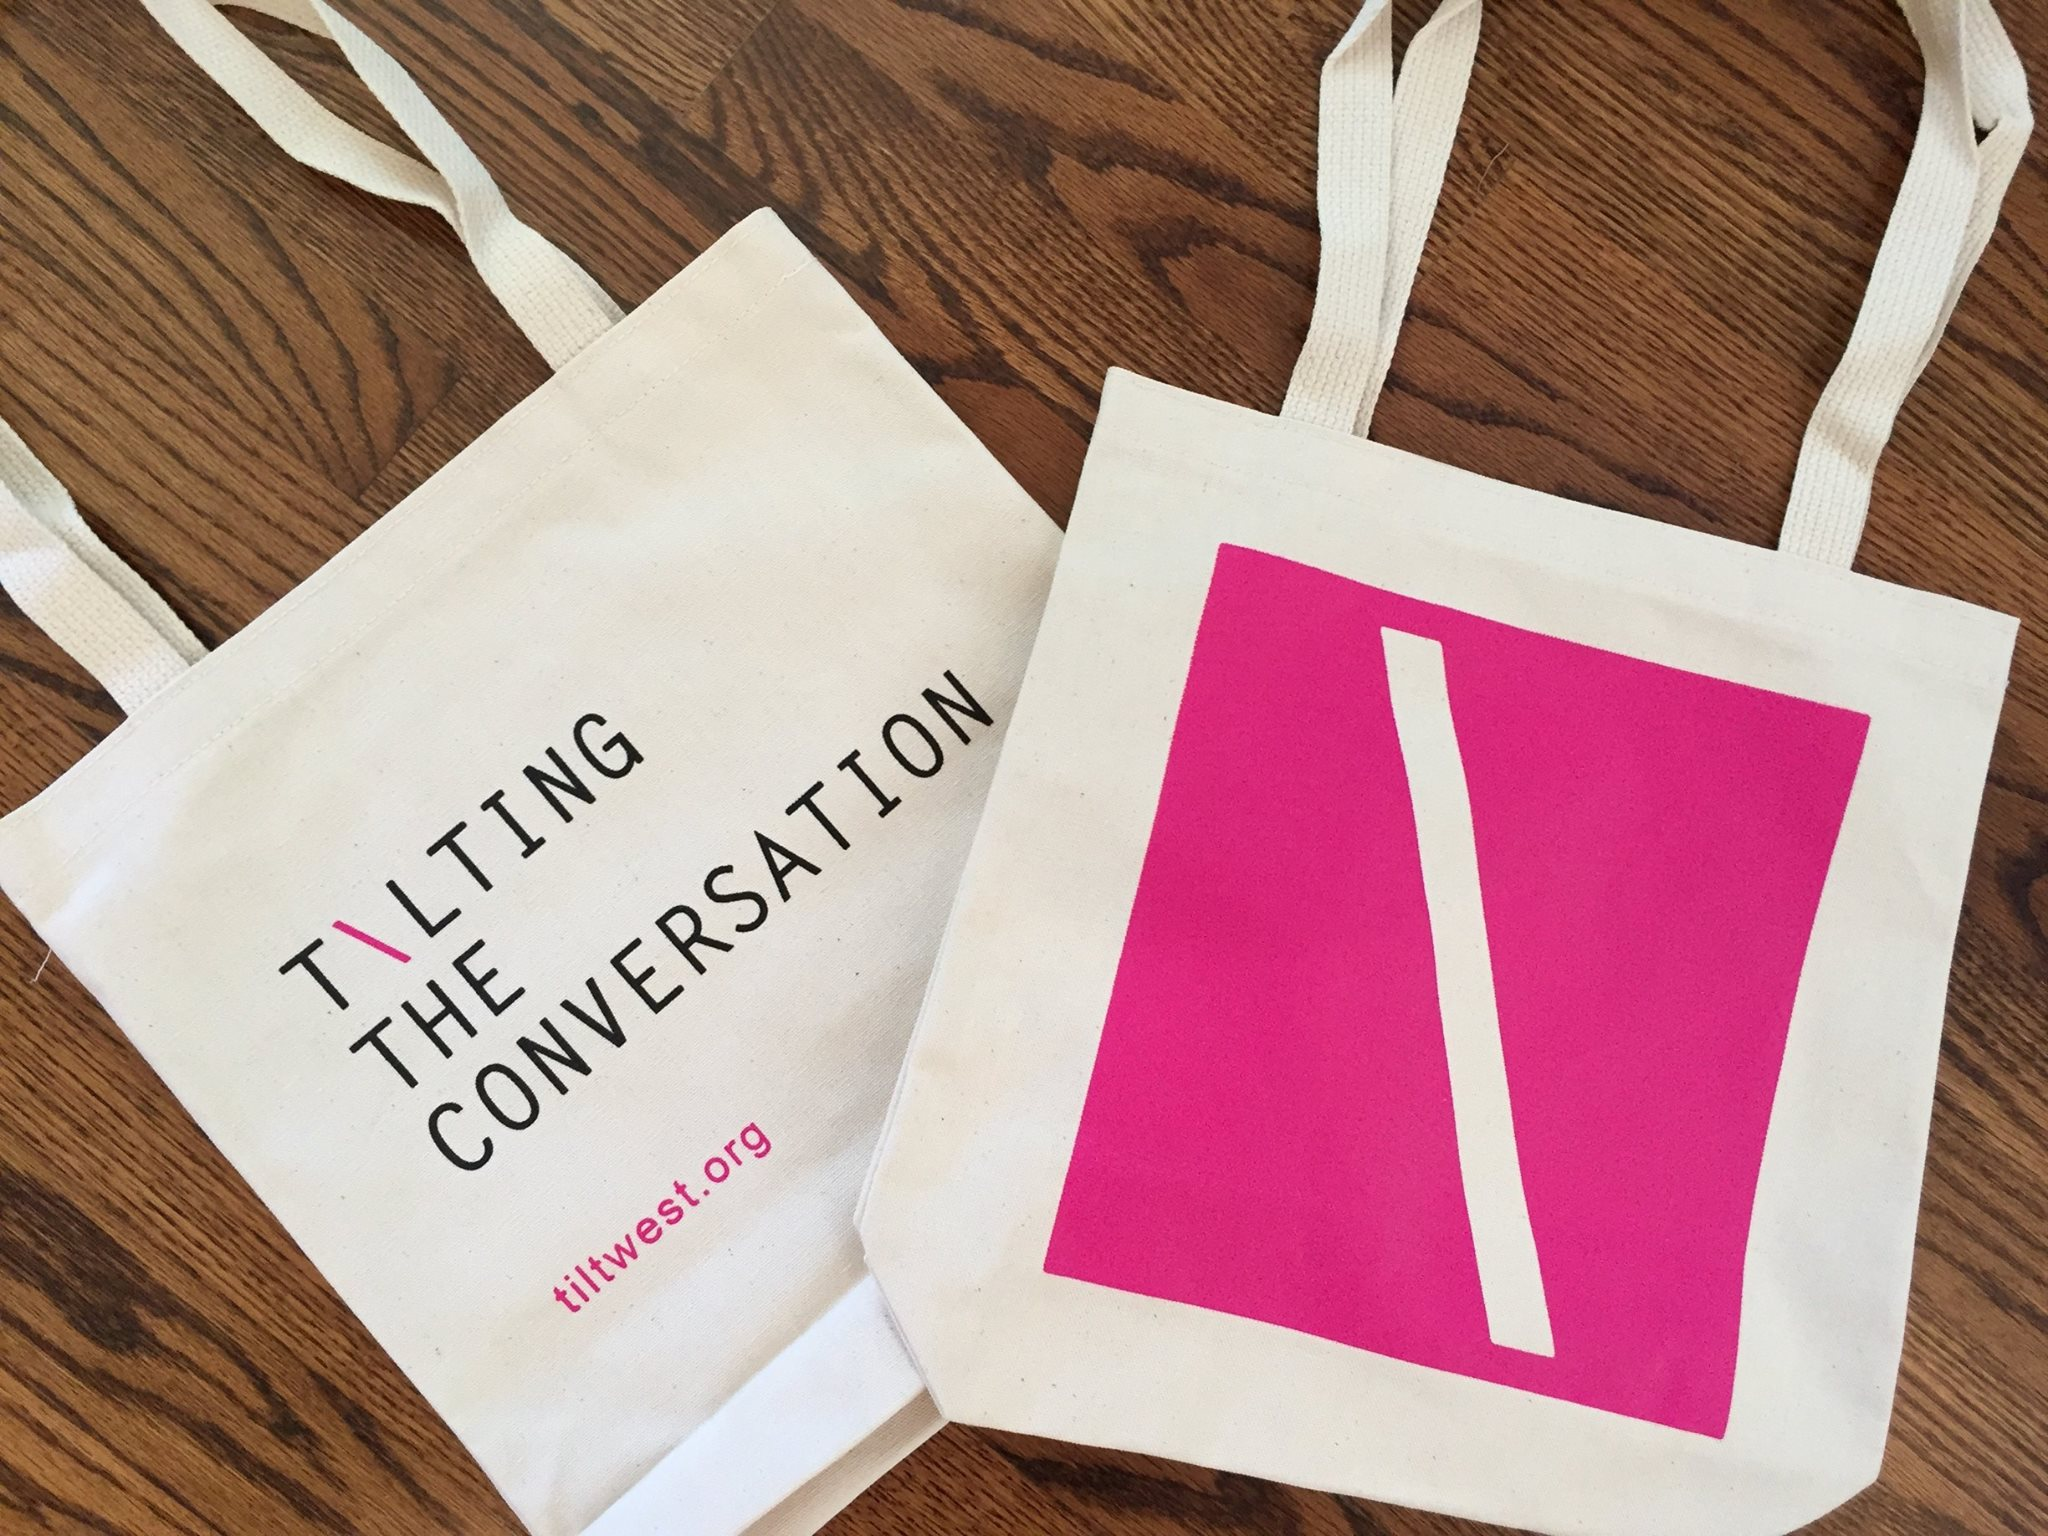 Photo of Tilt West tote bags